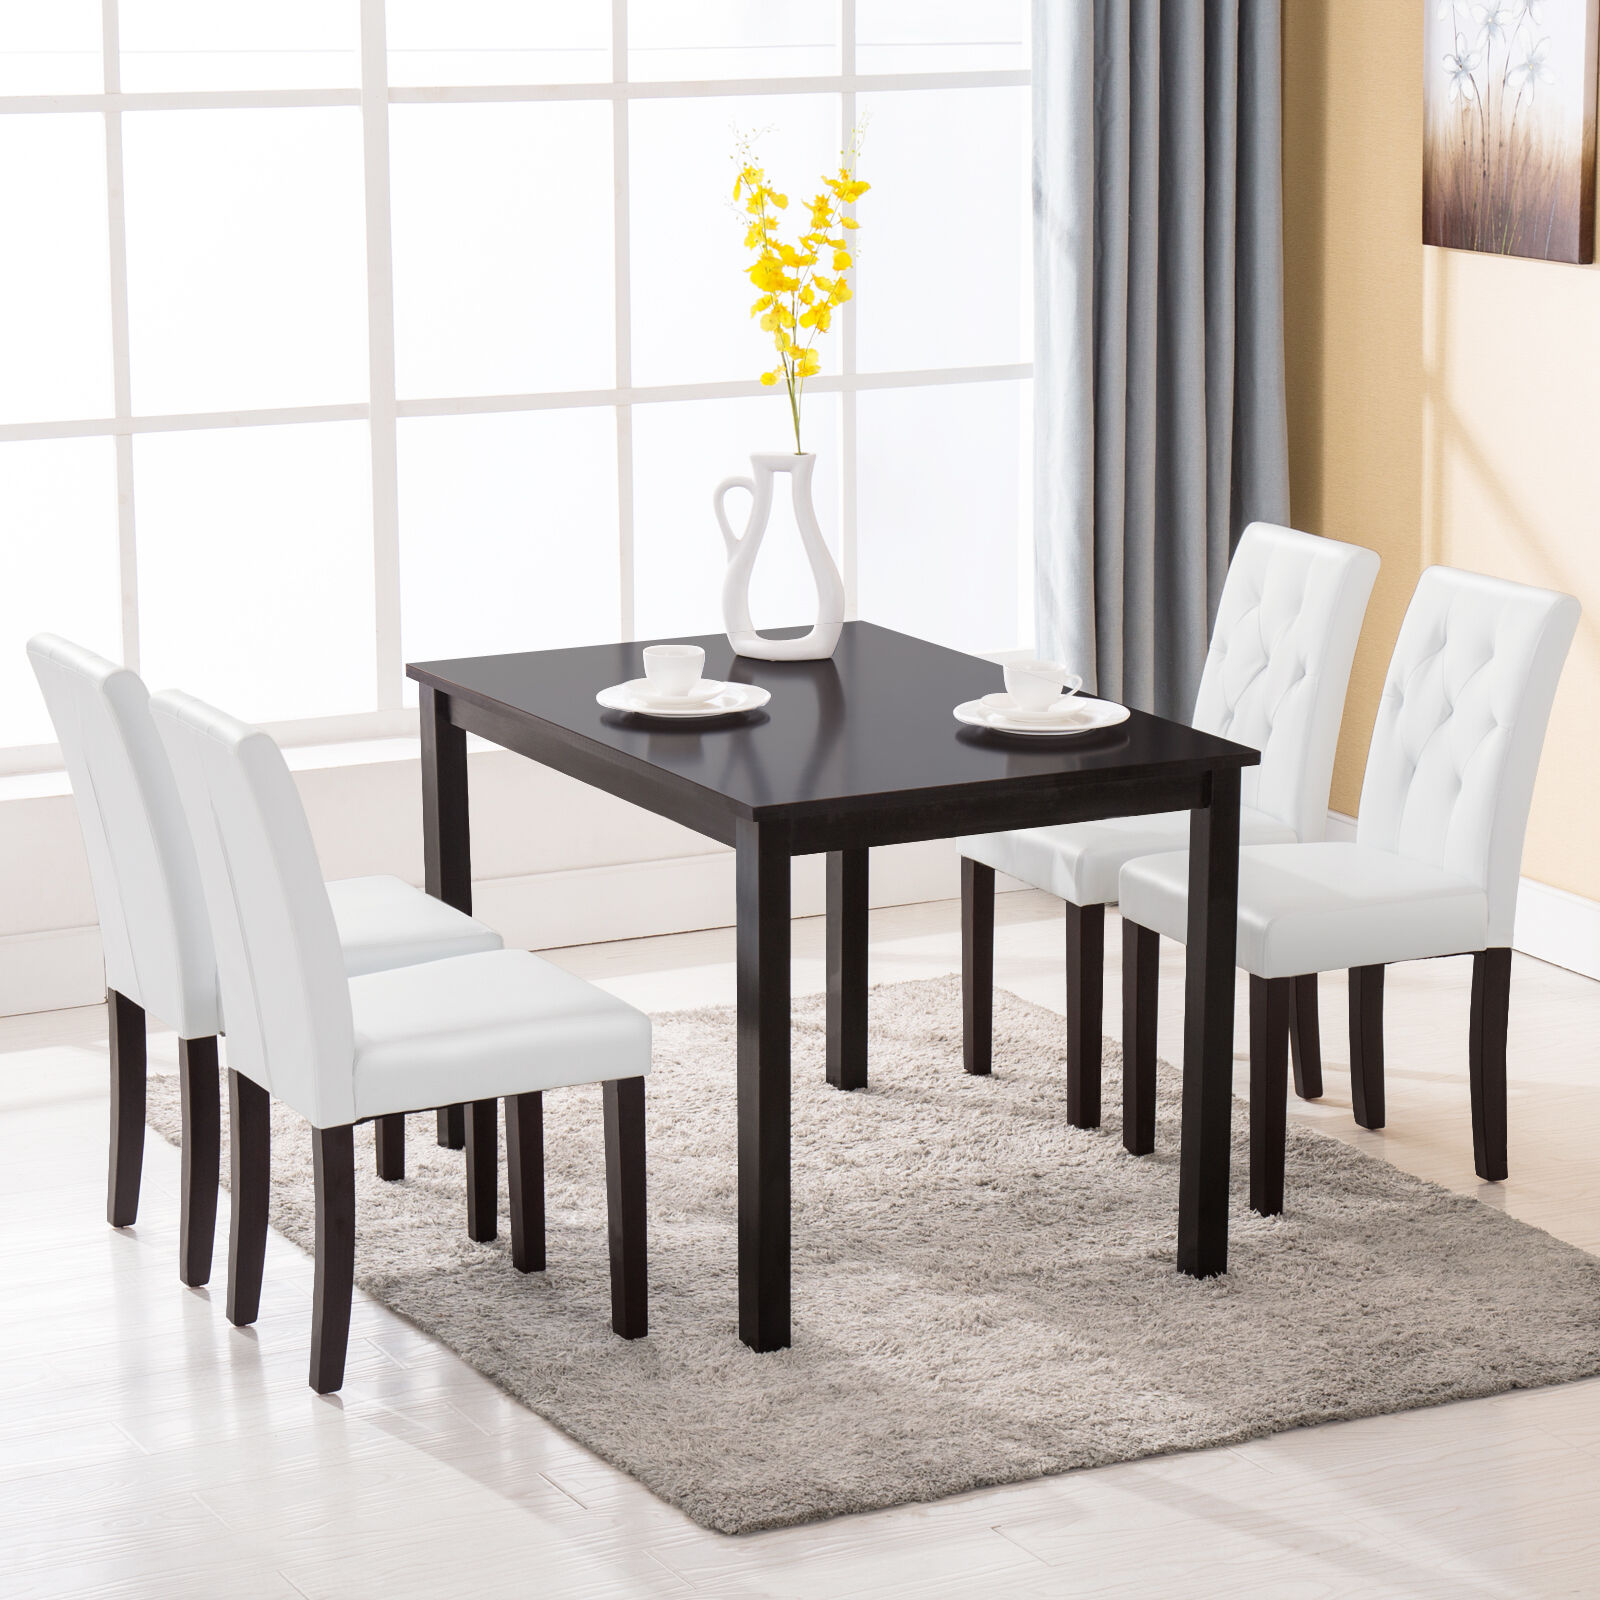 Dining Room Inexpensive Dining Room Table With Bench And: 5 Piece Dining Table Set 4 Chairs Room Kitchen Dinette